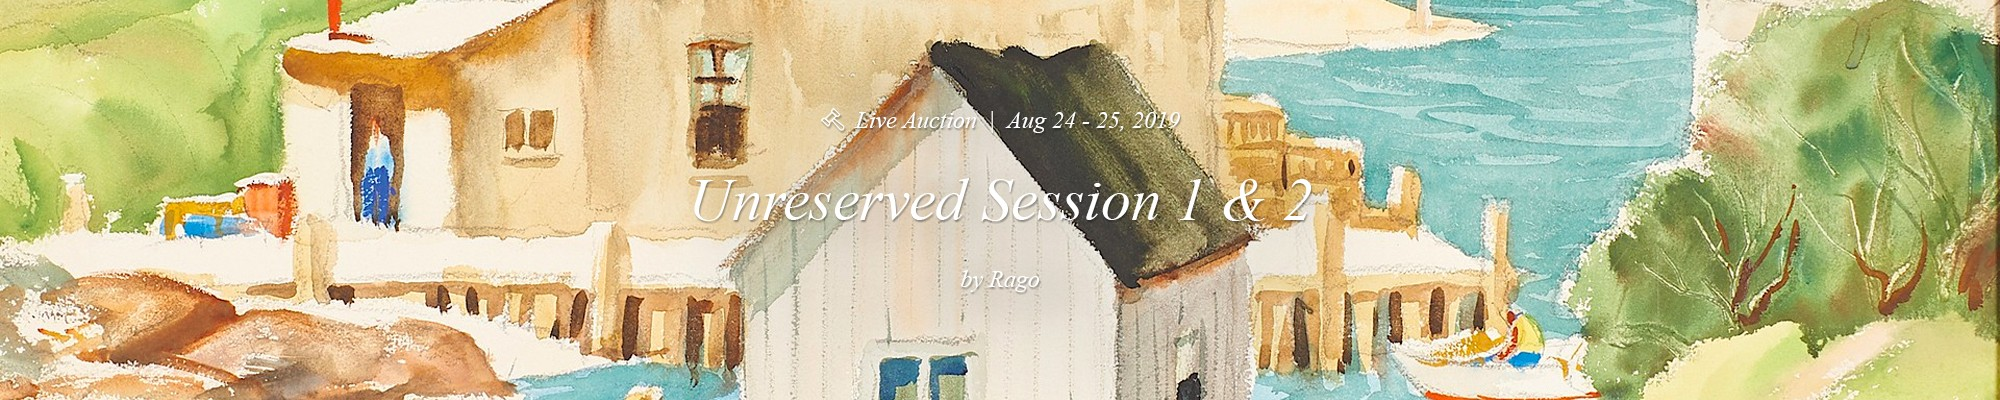 Unreserved session 1 & 2 - Rago